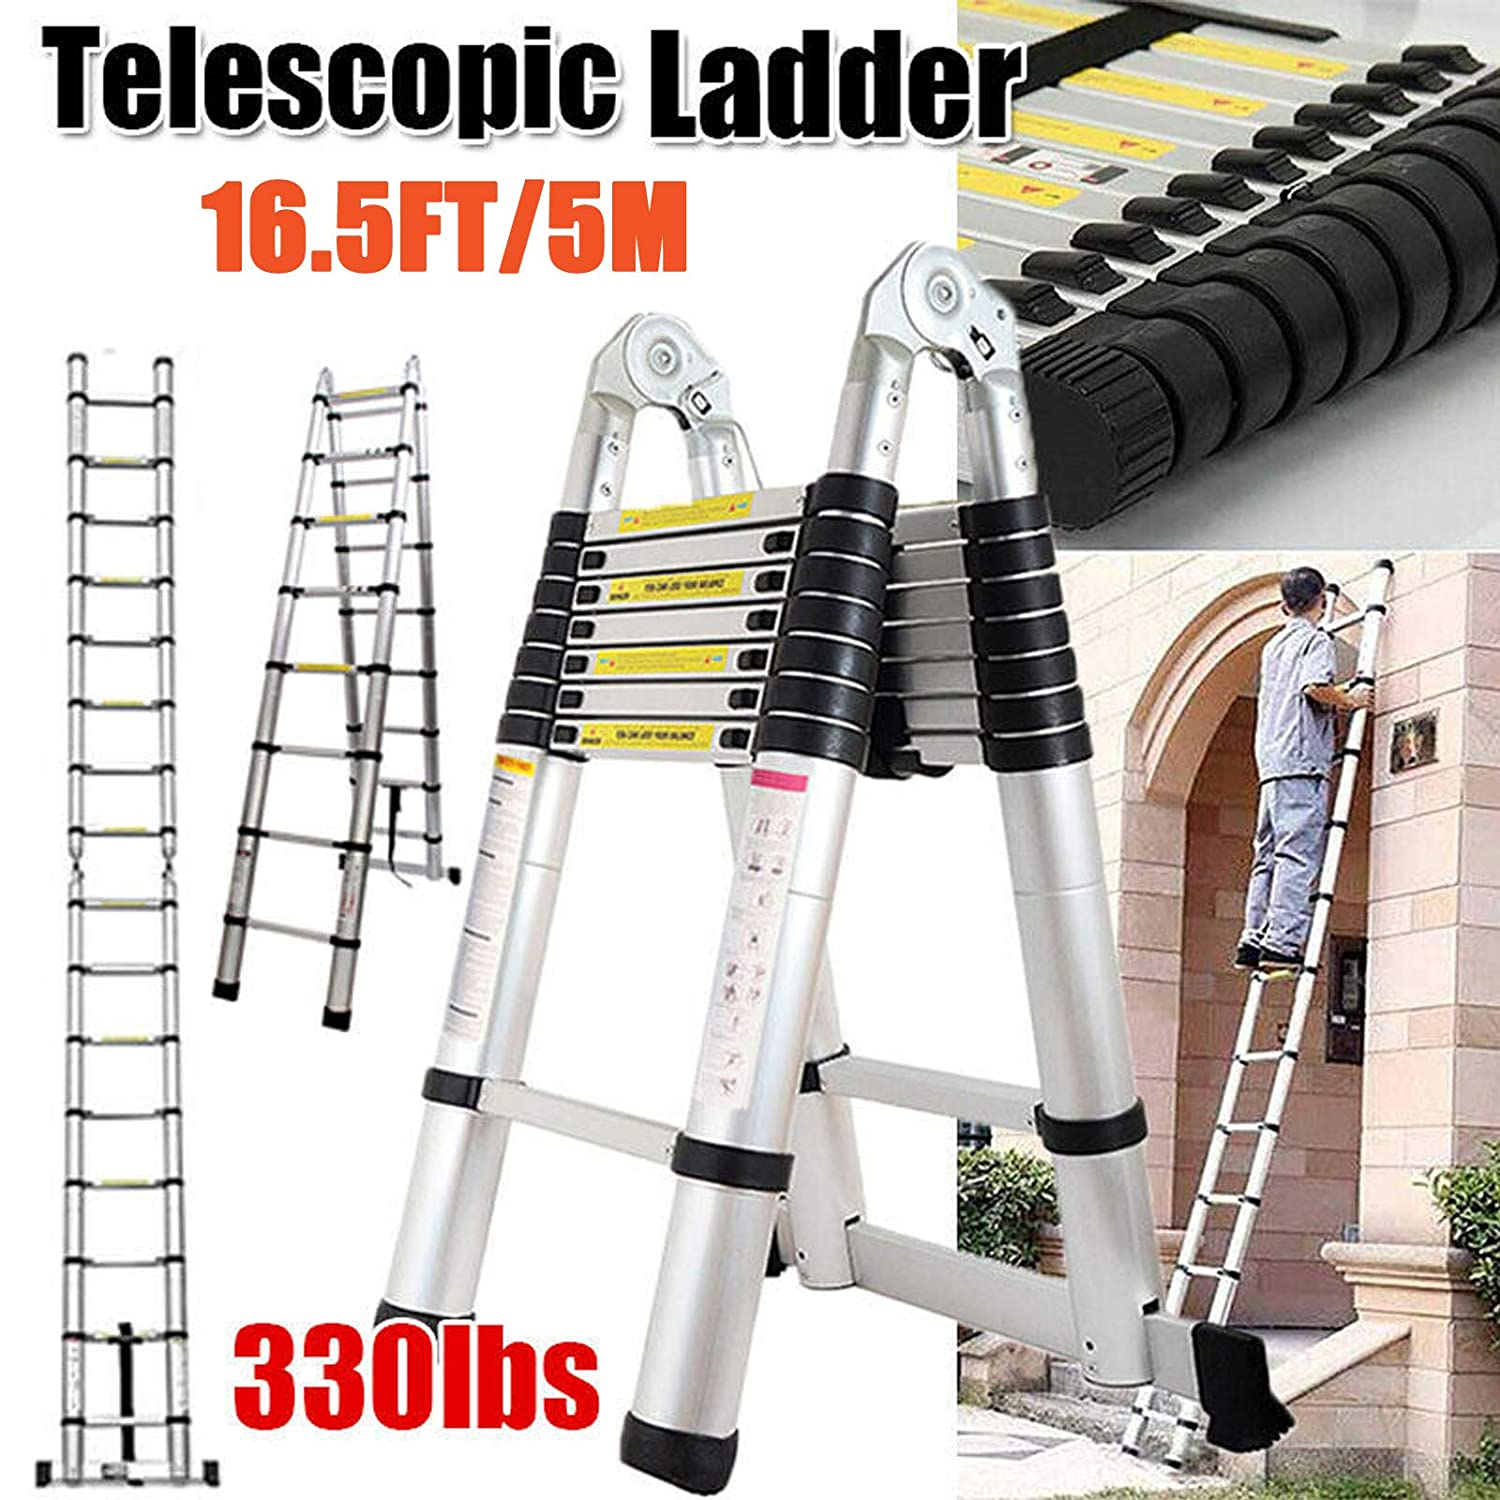 16.5 FT Aluminum Telescopic Extension Ladder Multi-Use Telescoping Ladder 330 Pound Capacity A-Frame & Straight Ladder Folding Portable for Indoor Outdoor DIY 5M